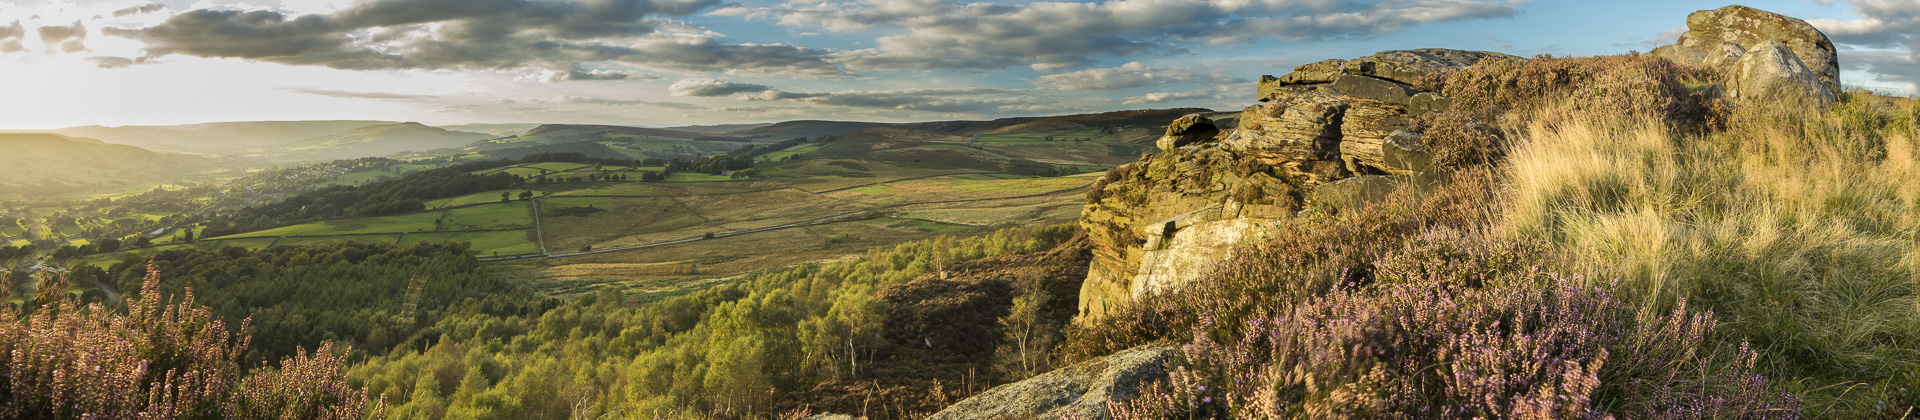 Callow Bank & Stanage Edge from Millstone Edge, nr Hathersage, Derbyshire Peaks District National Park, England, UK